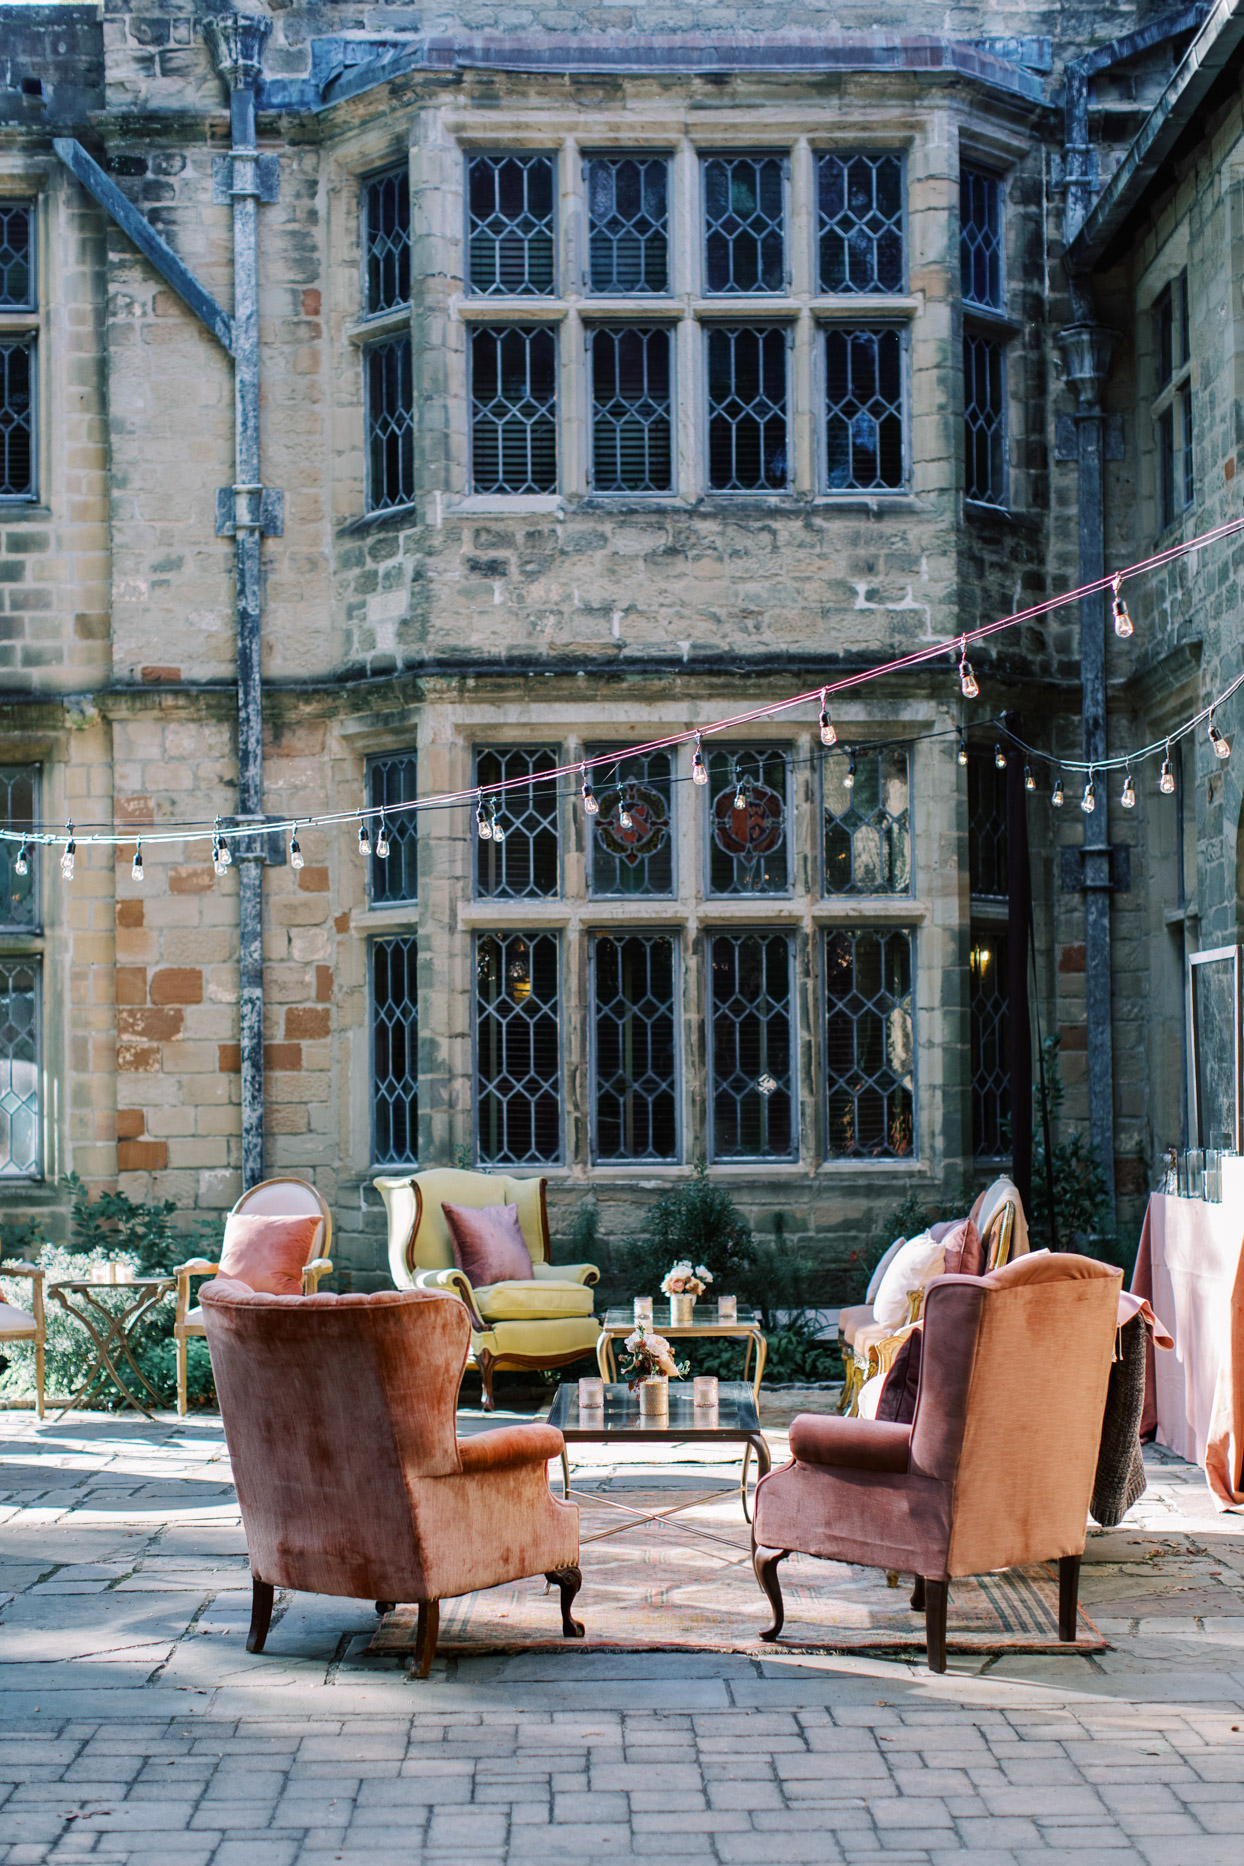 elegant lounge chairs set up for wedding cocktail hour in courtyard